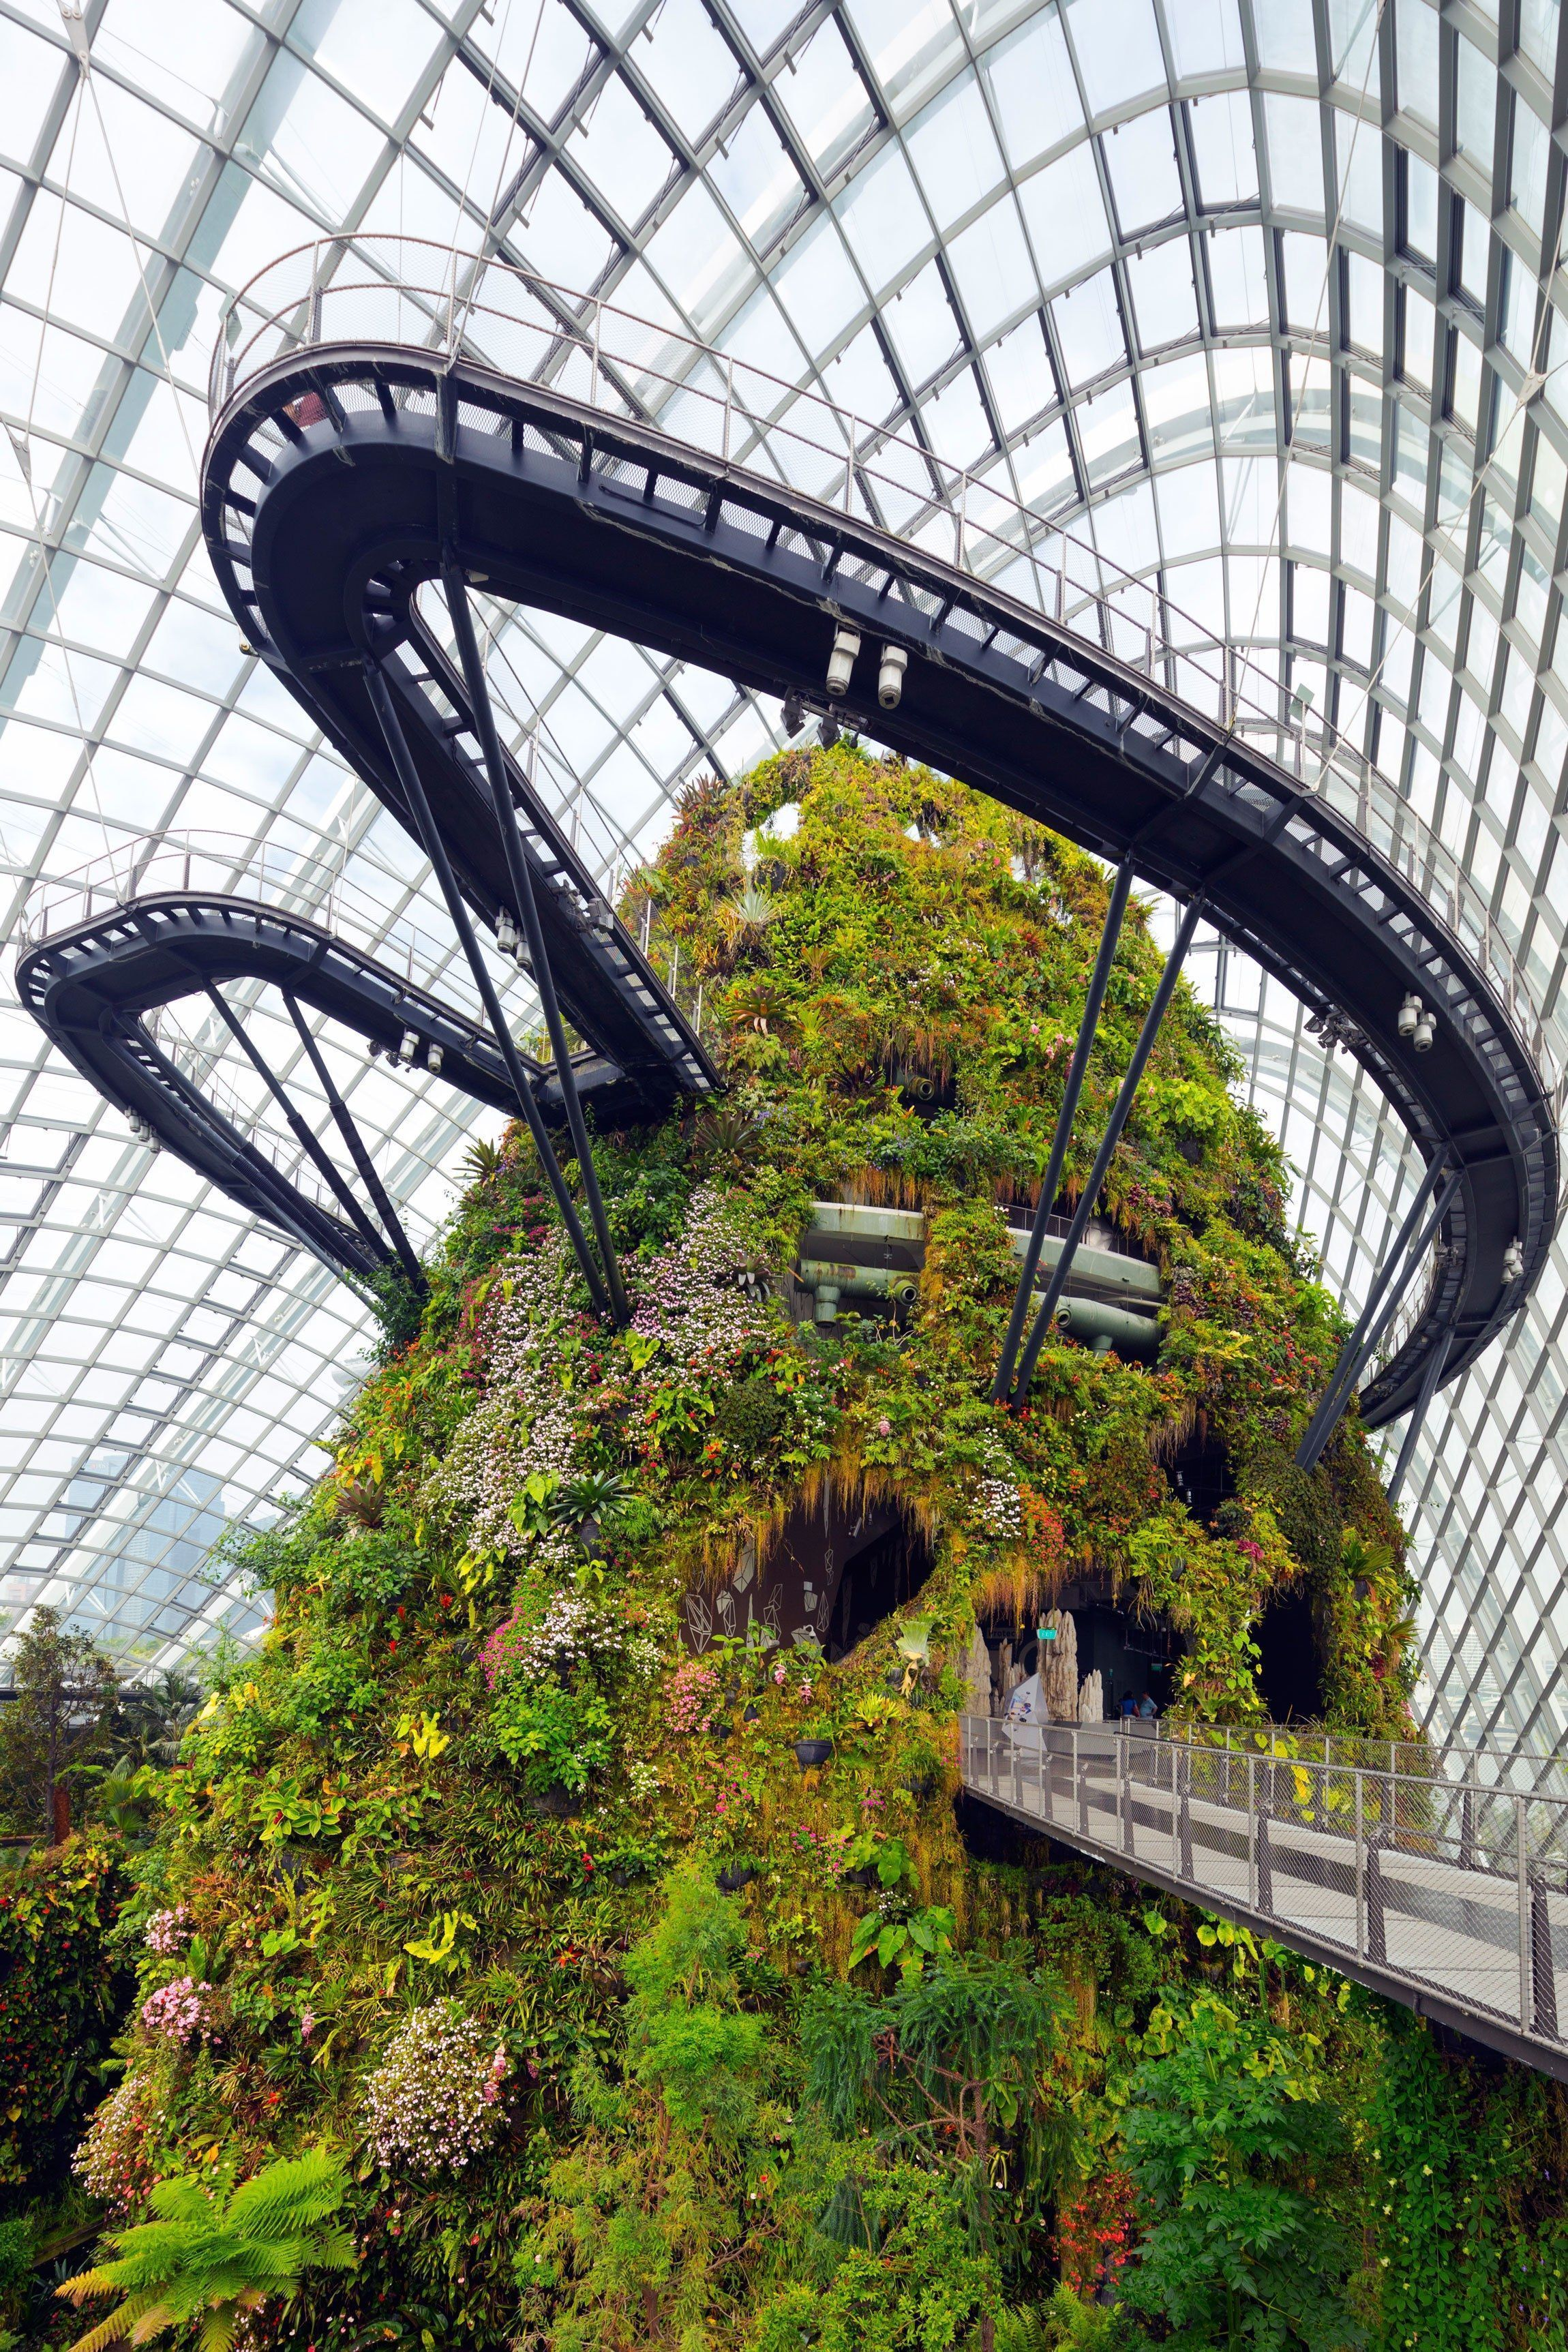 10 Stunning Greenhouse Conservatories Around The World Photos Architectural Conservatorygreenhouse Greenhouse Farming Singapore Garden Gardens By The Bay